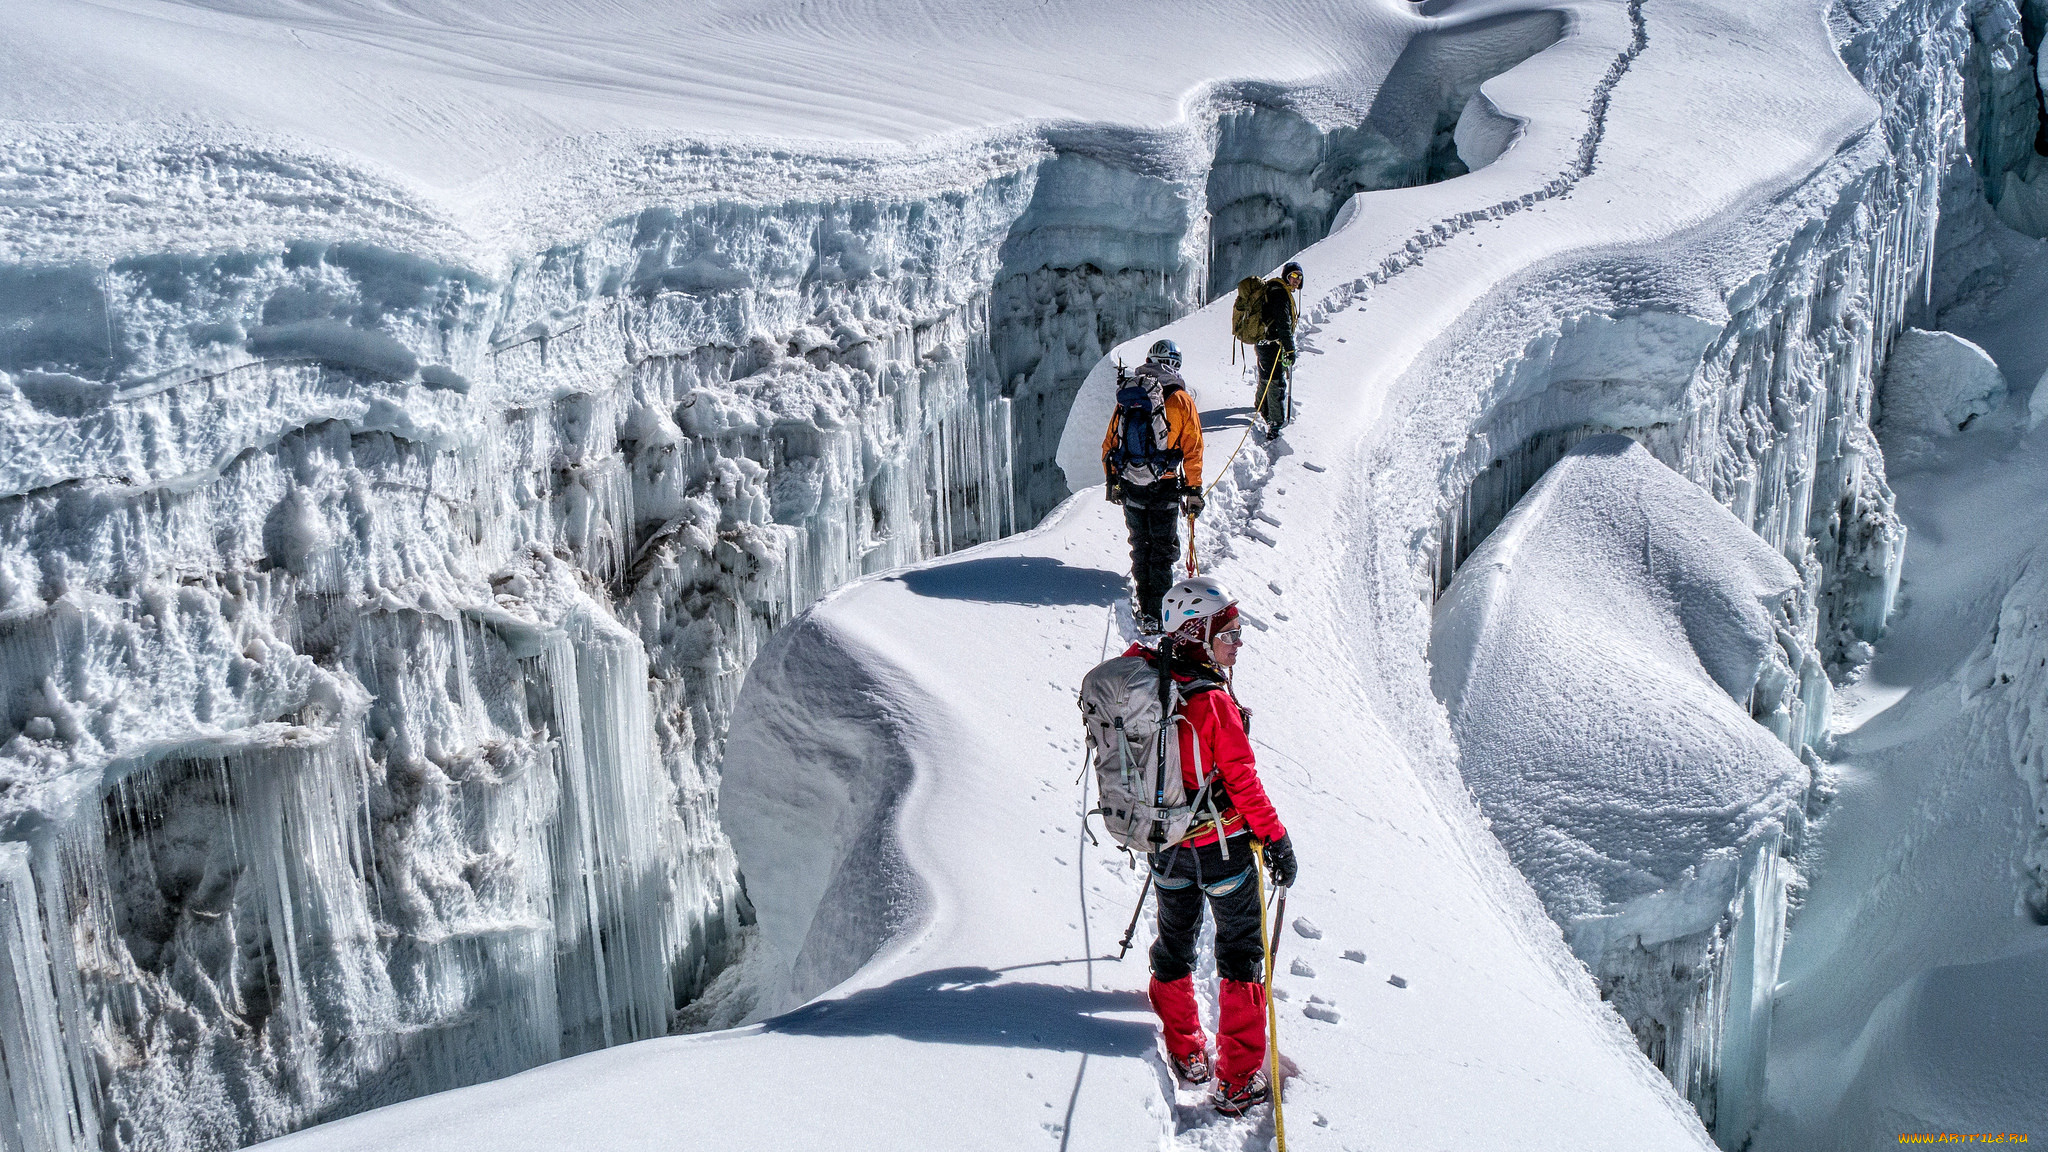 mountain climbing expeditions challenged - HD1440×900